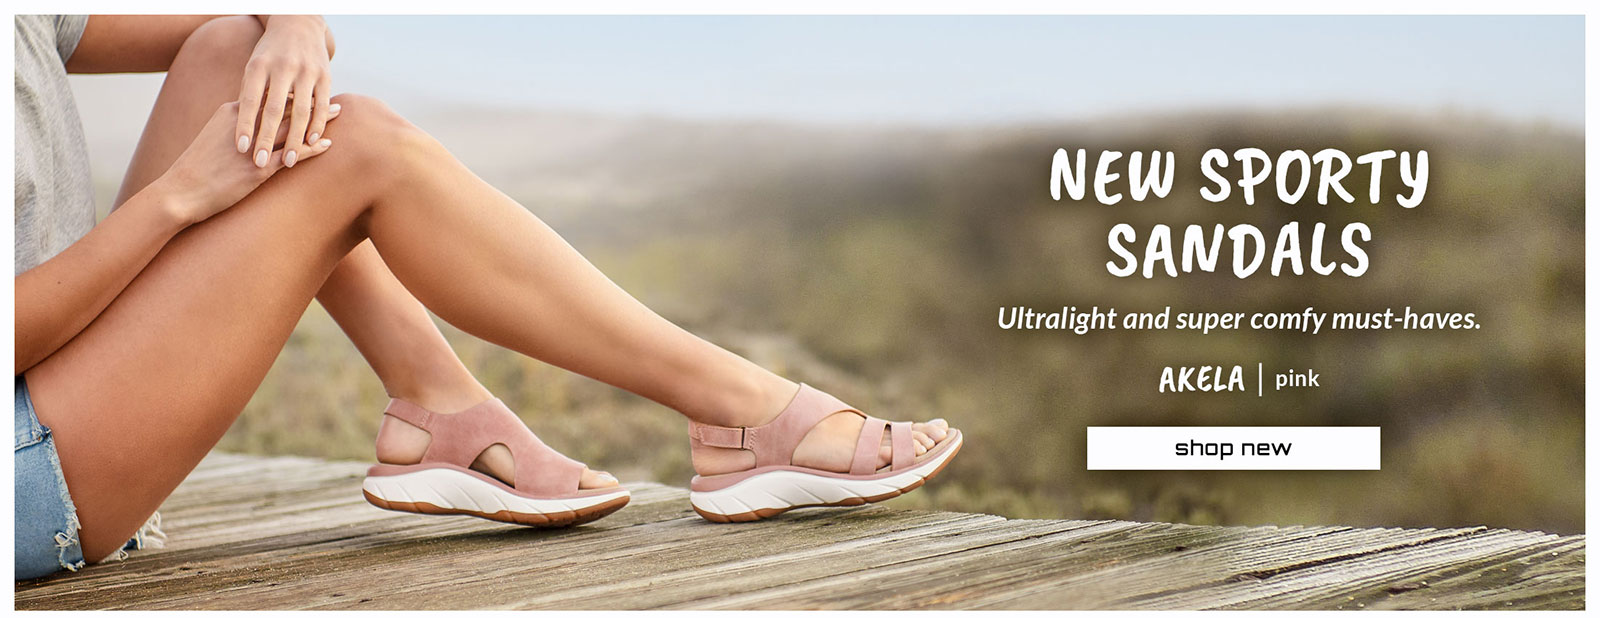 New sporty sandals. Ultralight and super comfy must-haves. Featured style: Akela sandal in pink. Shop new.